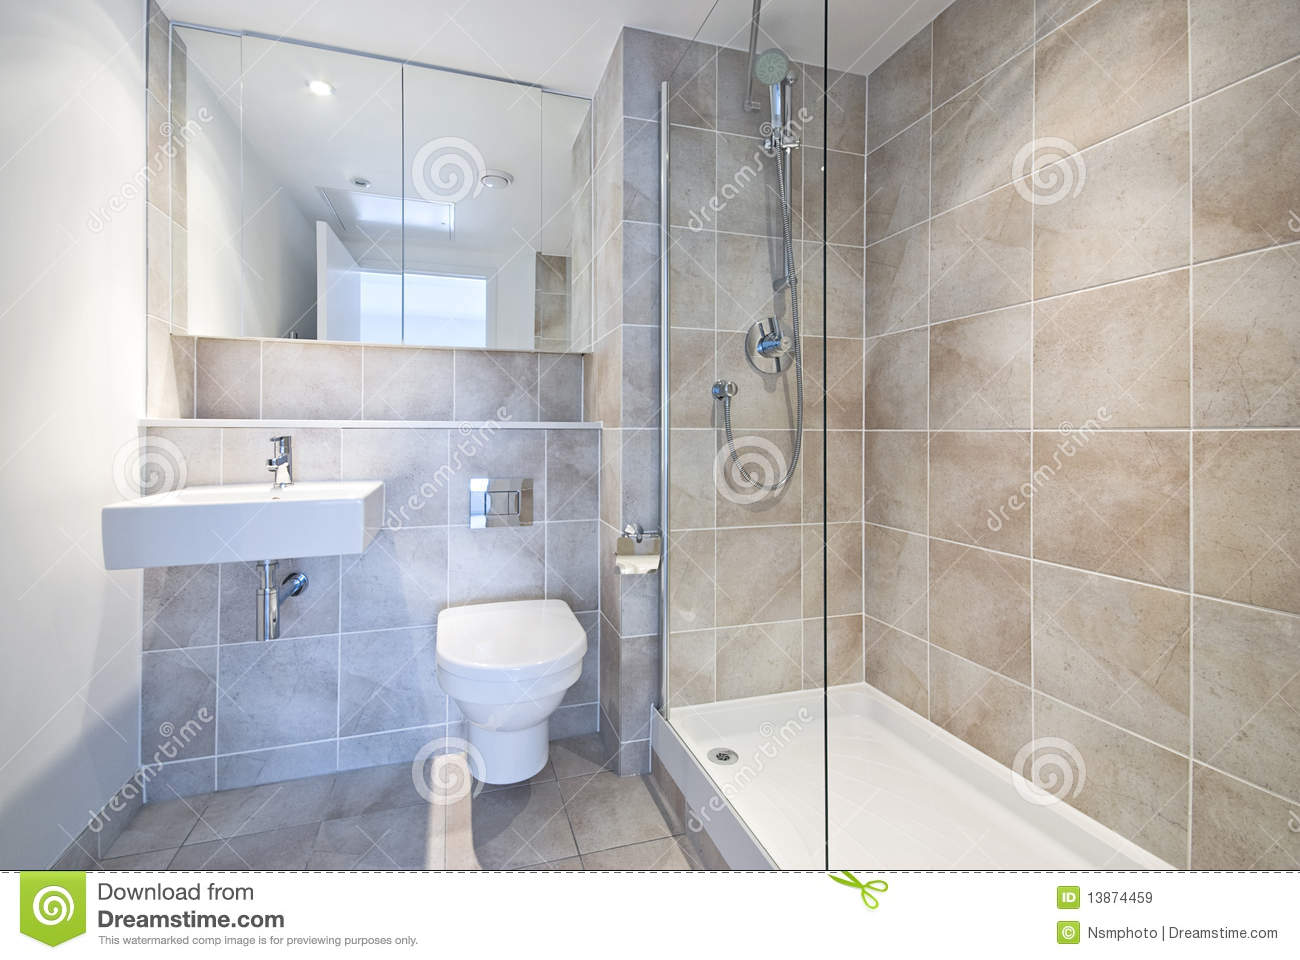 Cuartos De Baño Con Ducha:Modern Large Bathrooms with Showers